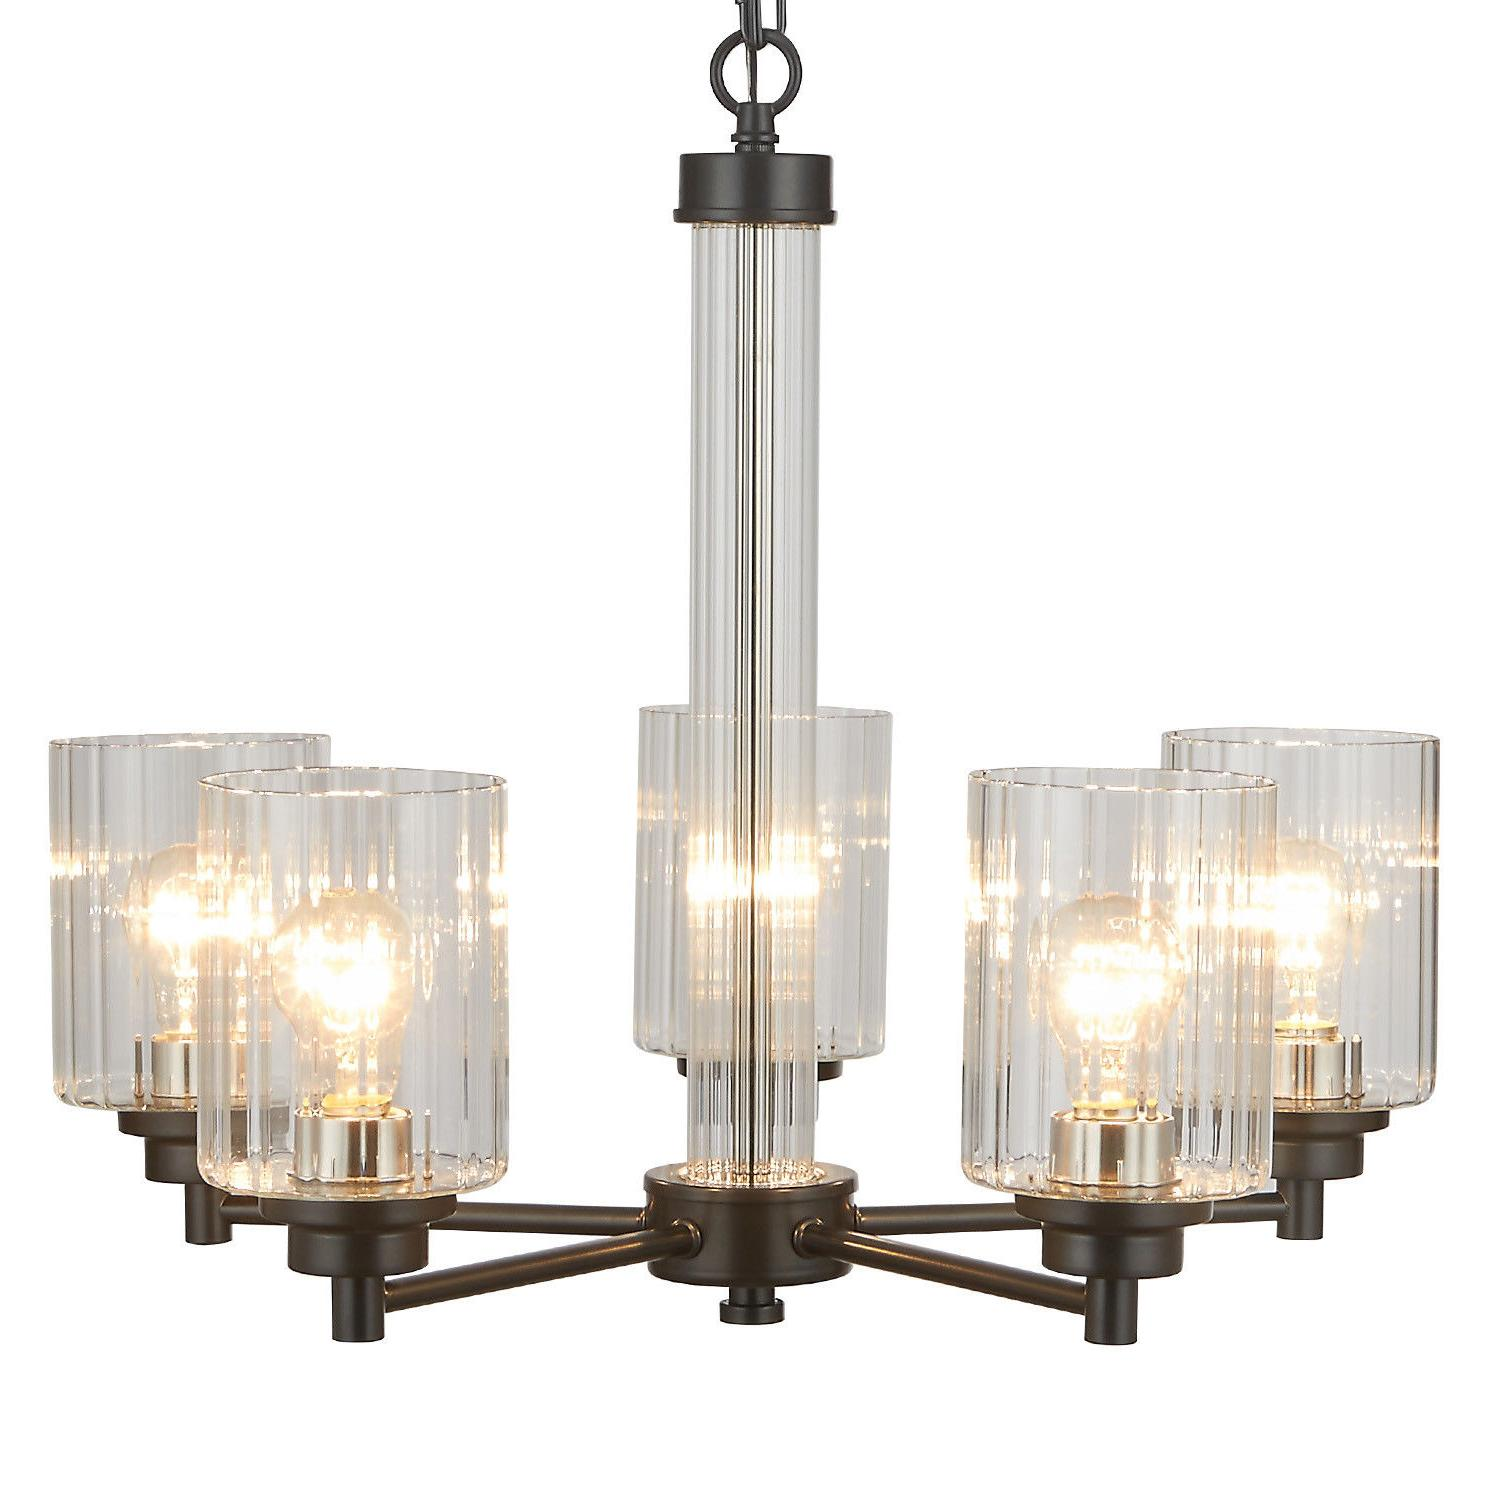 3 5 light chandelier lighting with clear